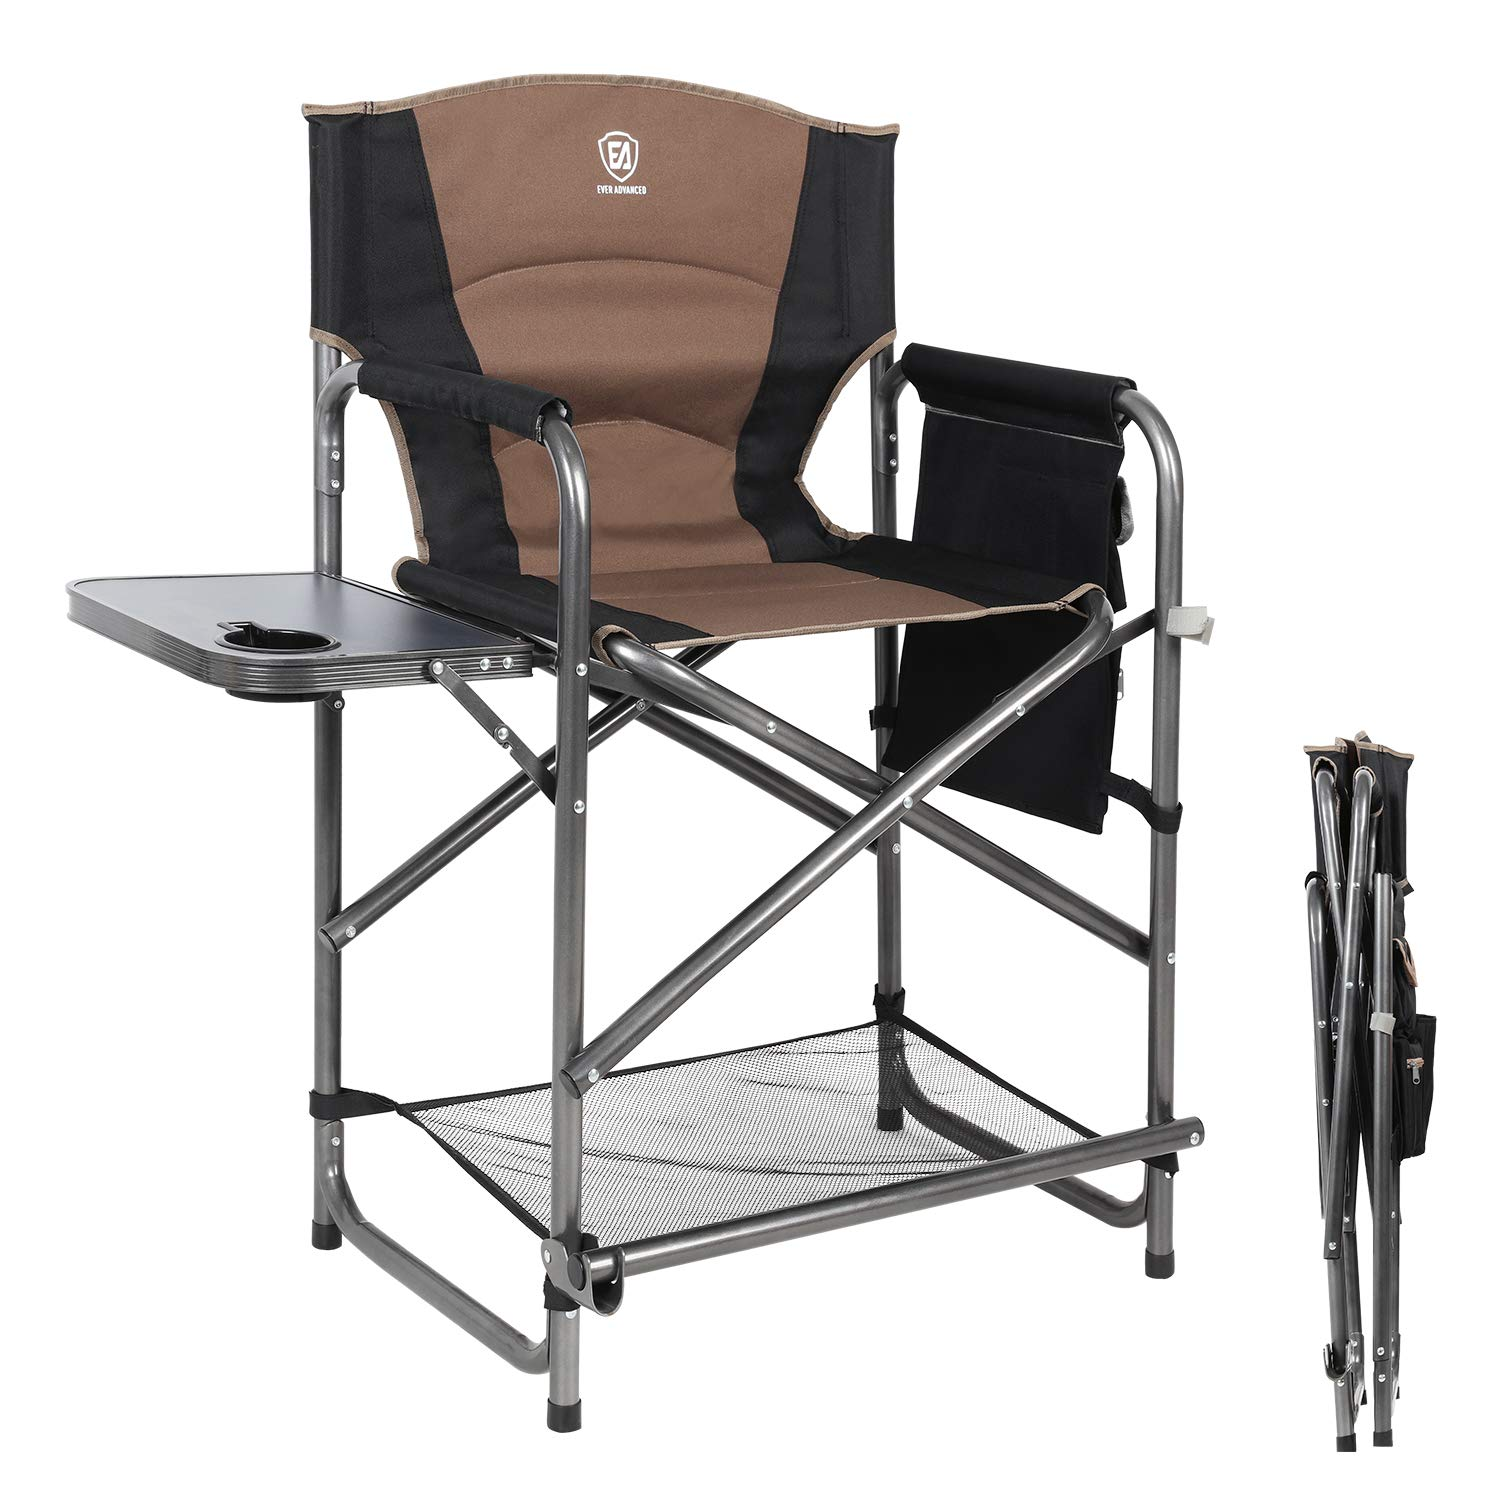 EVER ADVANCED Medium Tall Directors Chair Bar Height Foldable Makeup Artist Chair with Side Table Cup Holder Side Storage Bag Footrest, Supports 300LBS by EVER ADVANCED